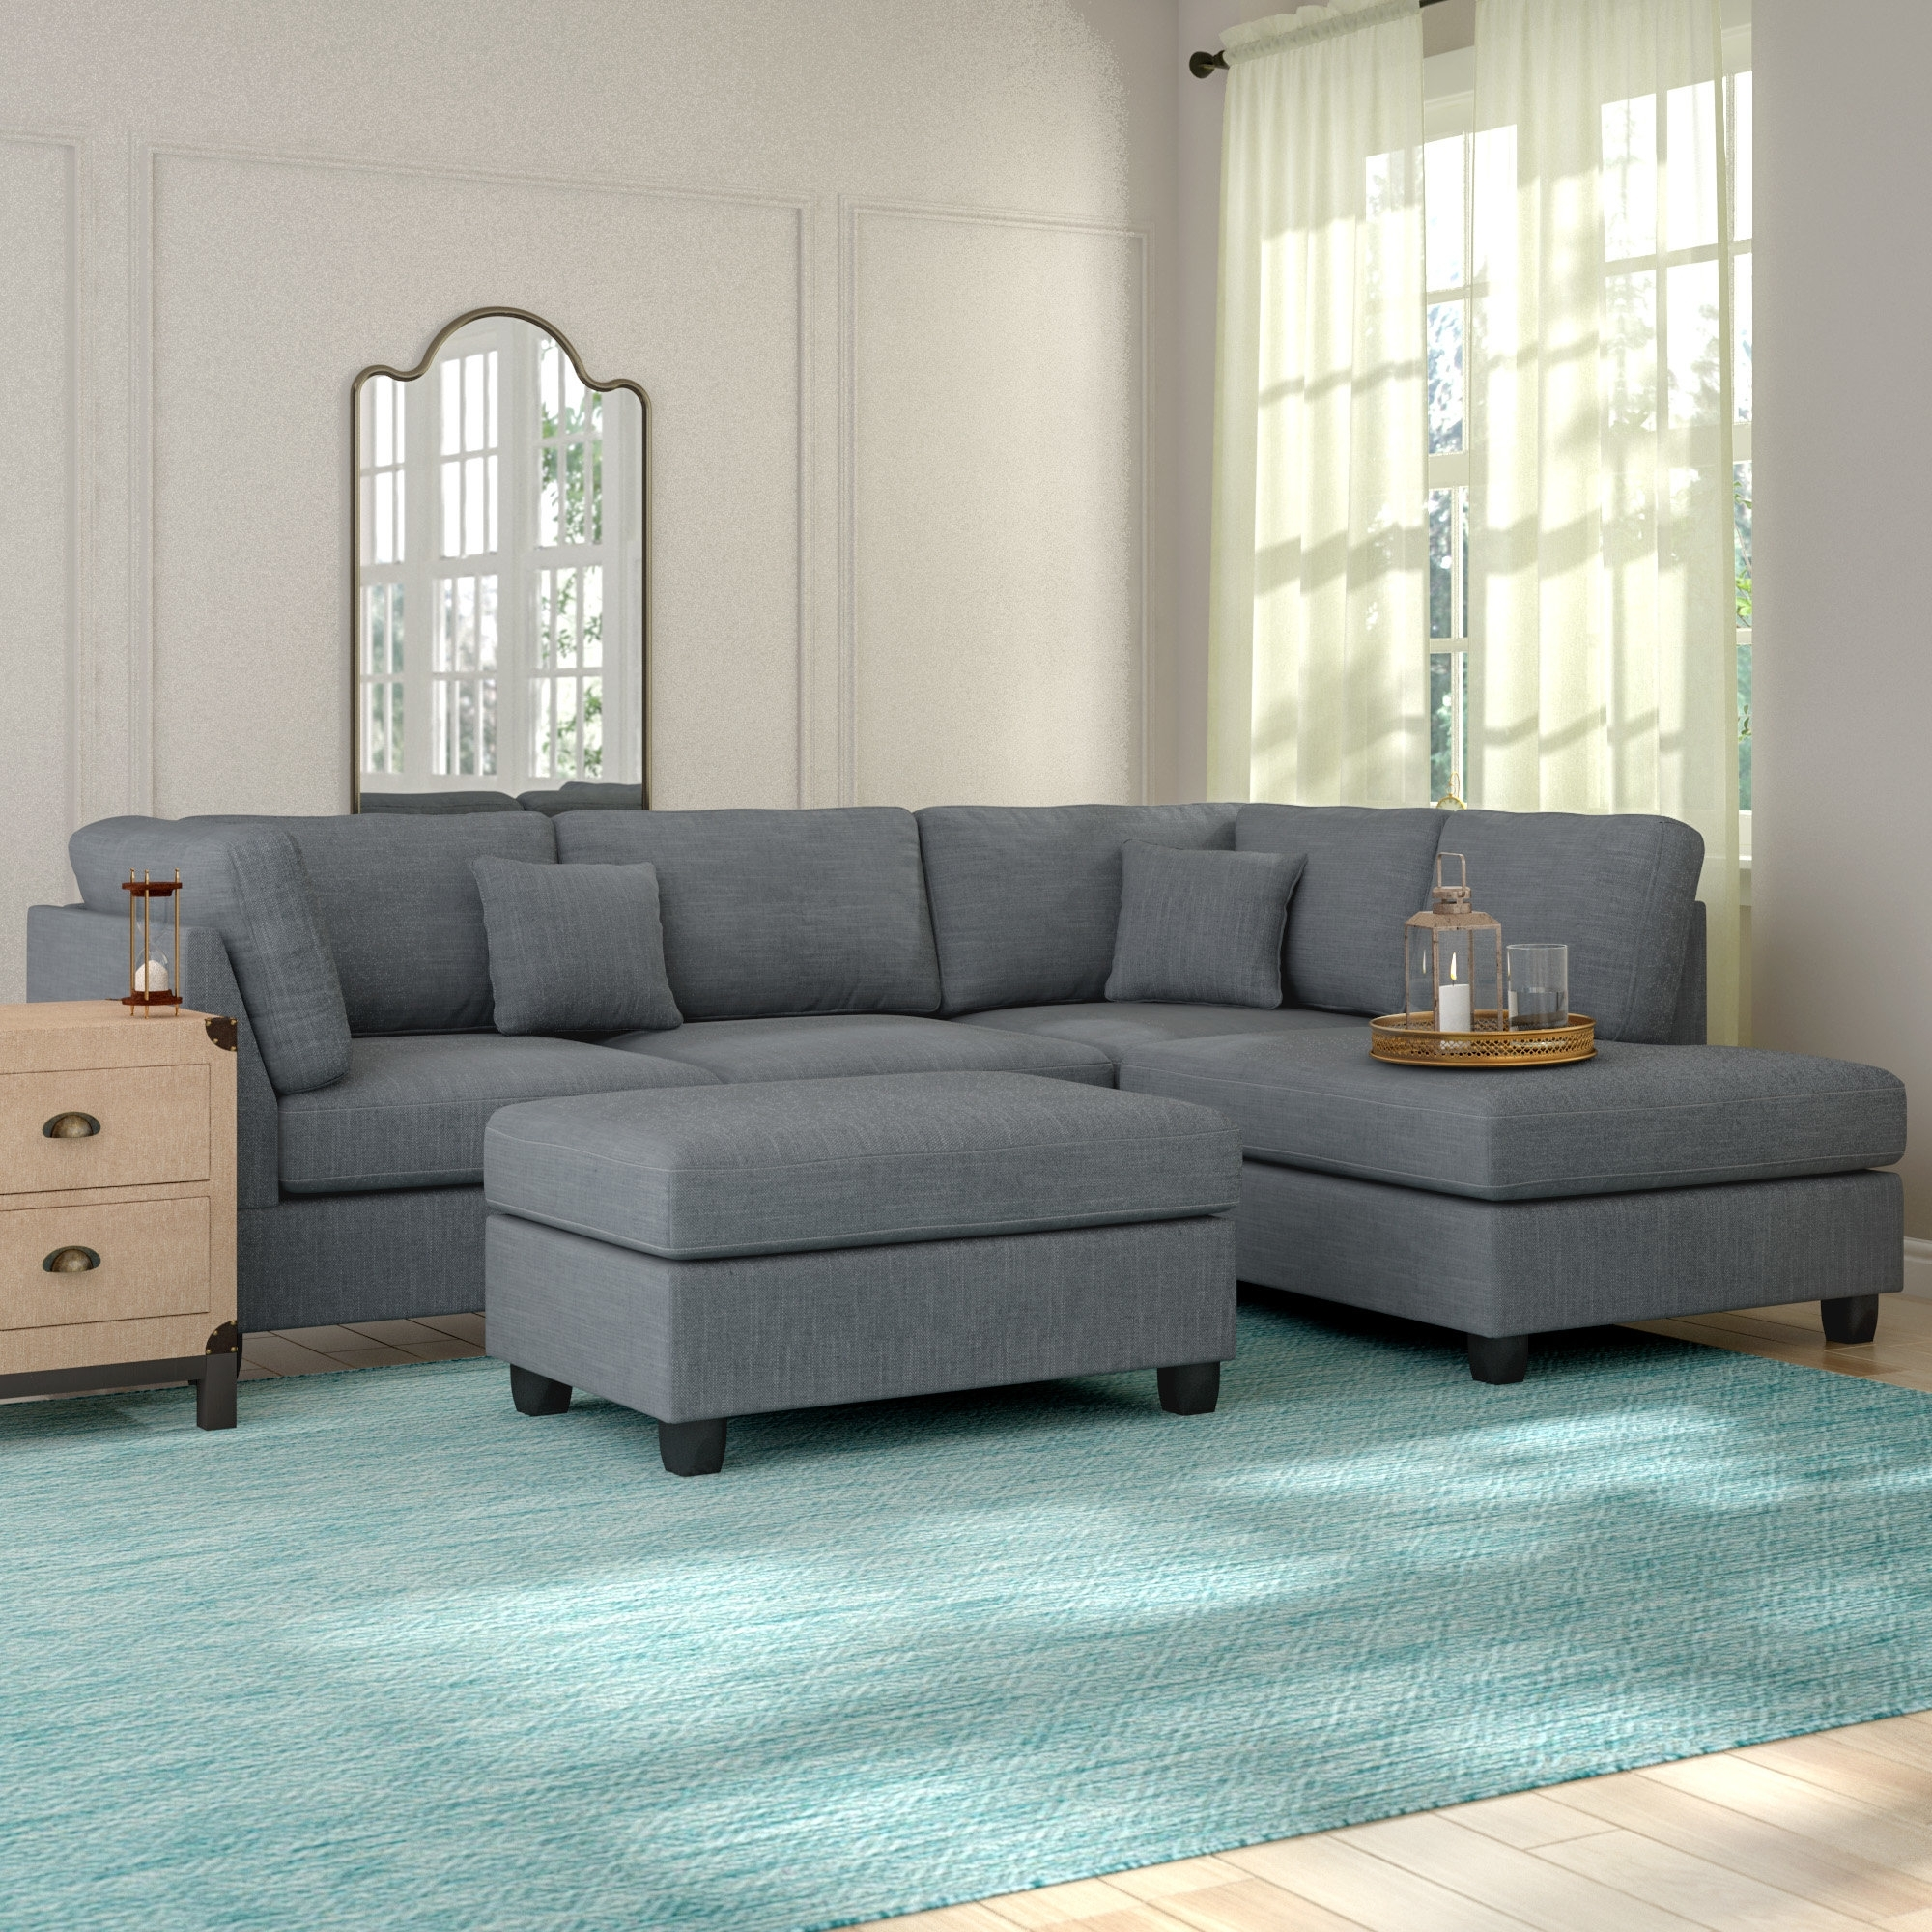 Gray Sectional Couch You'll Love (View 5 of 20)